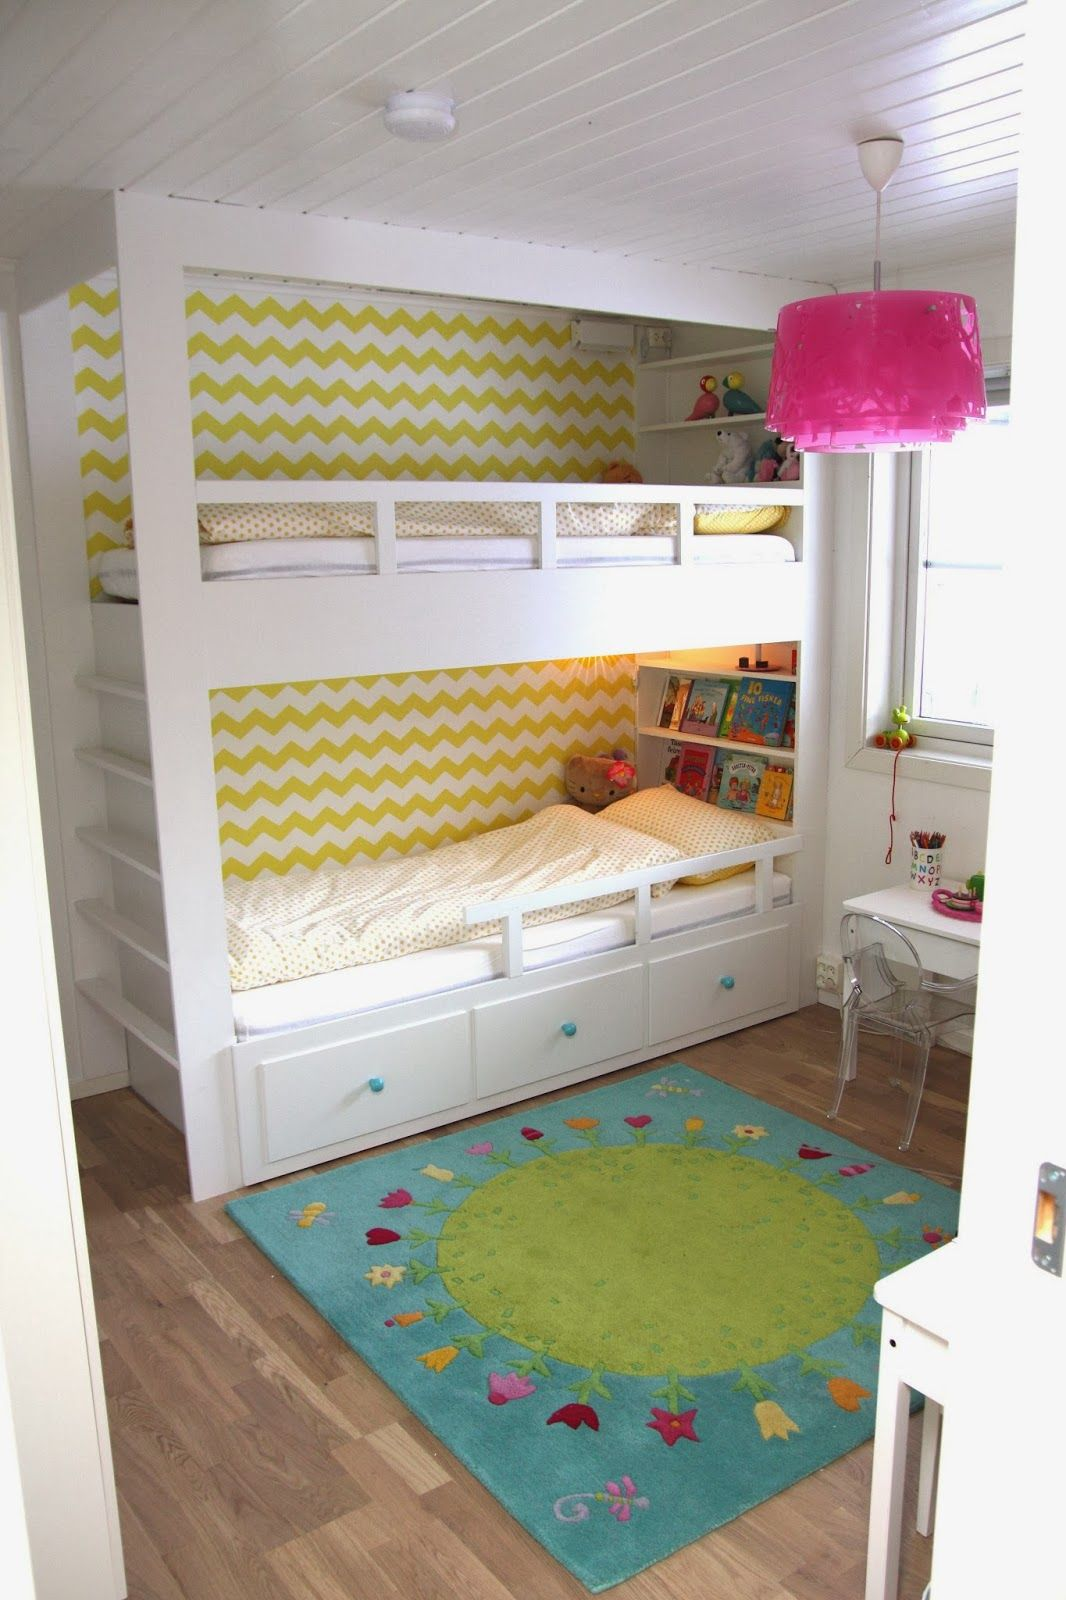 Doppelstockbett Ikea Oh! It's A Hemnes Daybed On The Bottom With A Loft Bed On